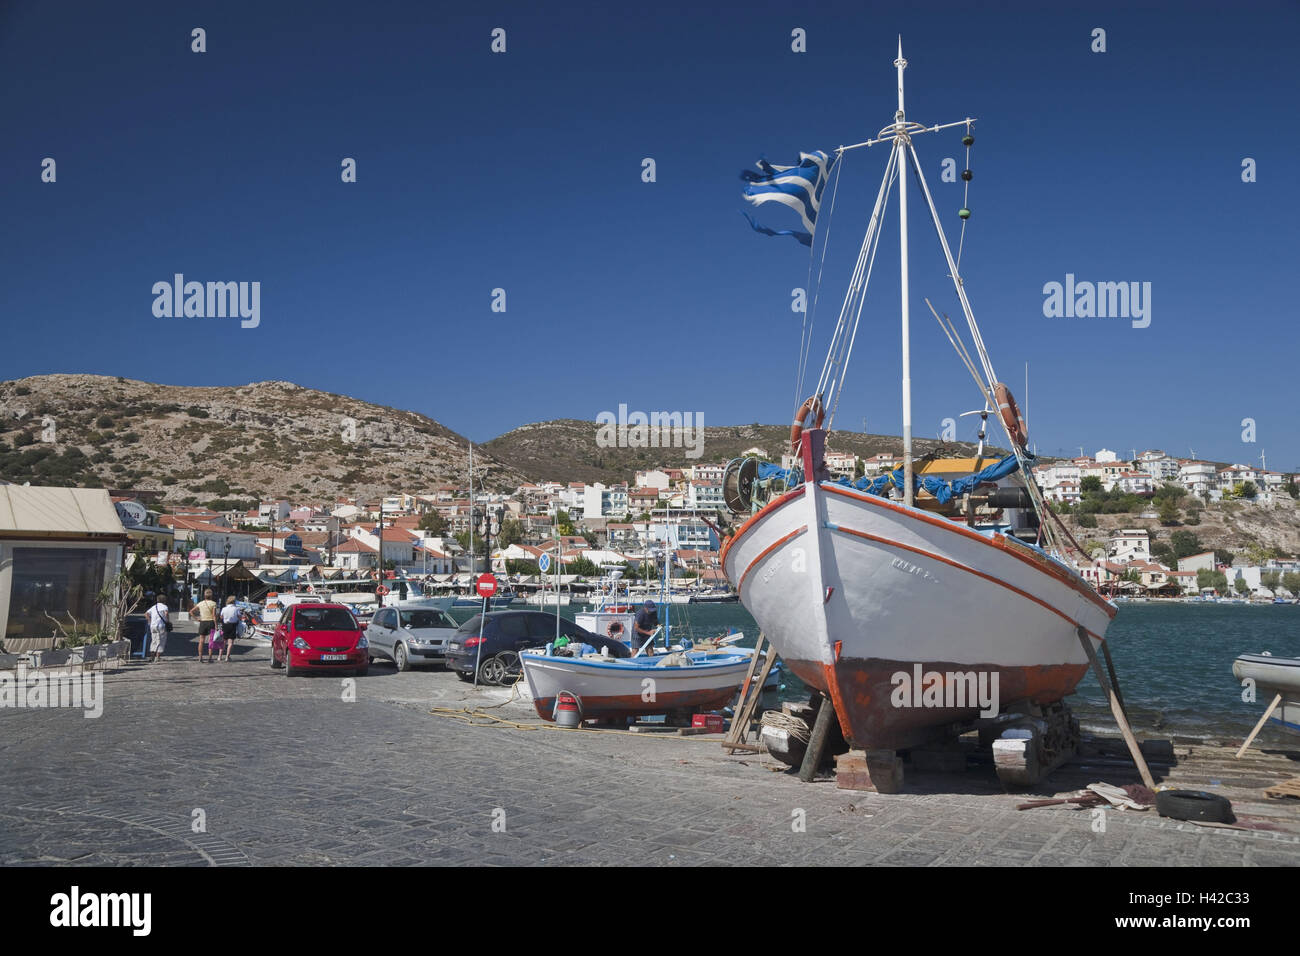 Fishing boats, harbour, Pythagorion, island Samos, Mediterranean island, Greece, Europe, Stock Photo